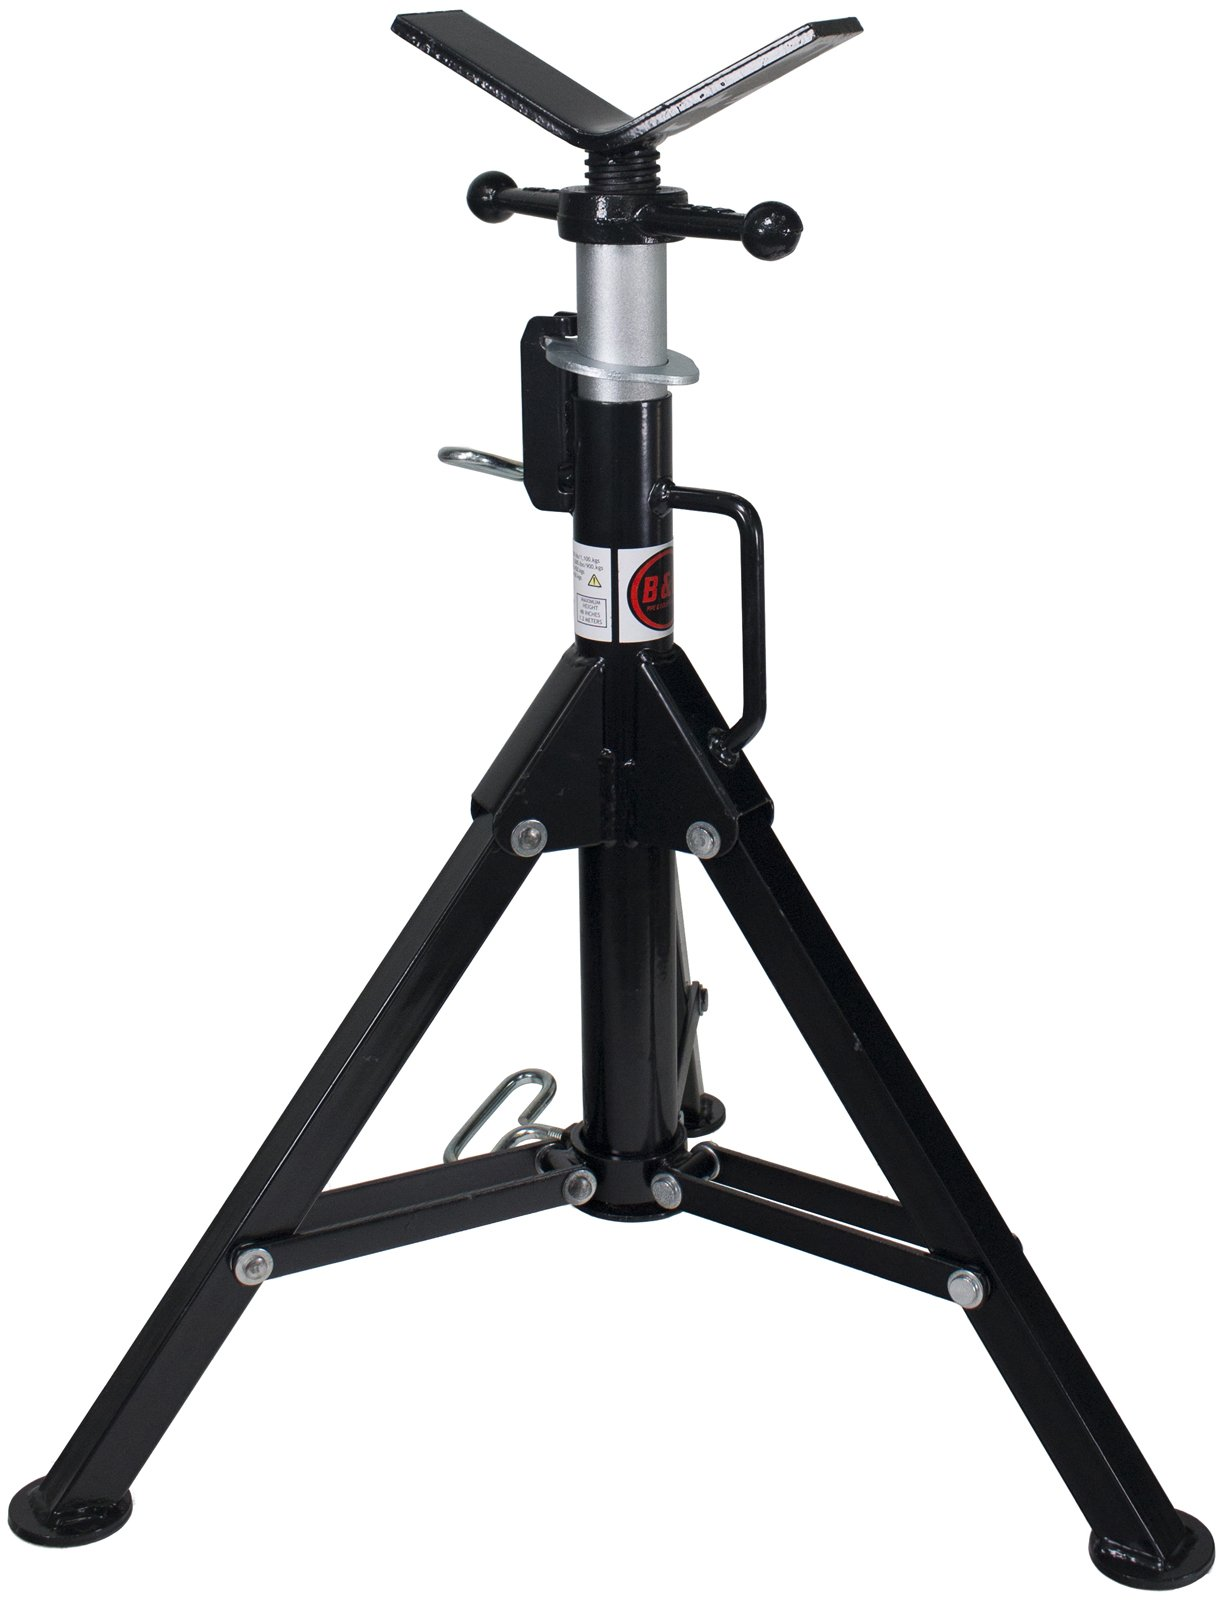 B&B Pipe 3900 High-Profile Adjustable Pipe Jack Stand with V-Head and Folding Legs for Pipe Fitting, Threading, Welding